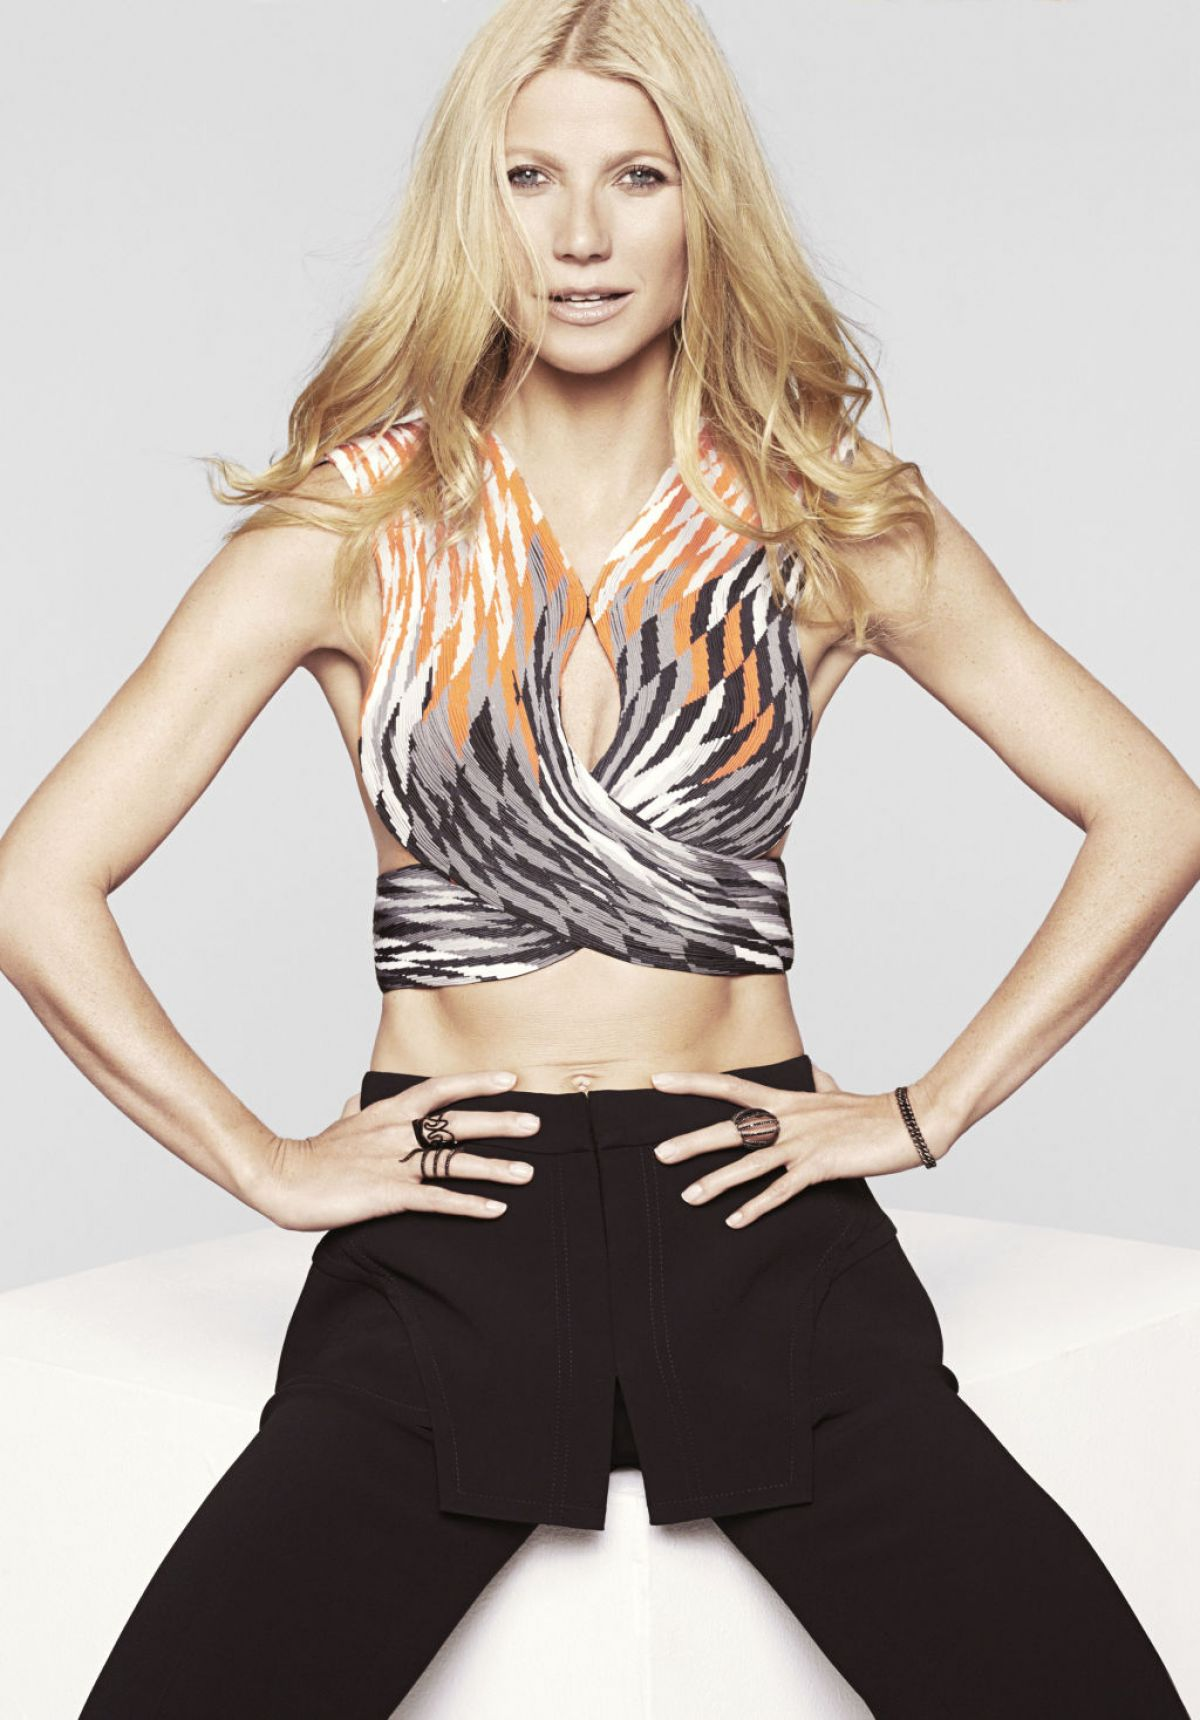 GWYNETH PALTROW in Marie Vlaire Magazine, February 2015 Issue ... Gwyneth Paltrow